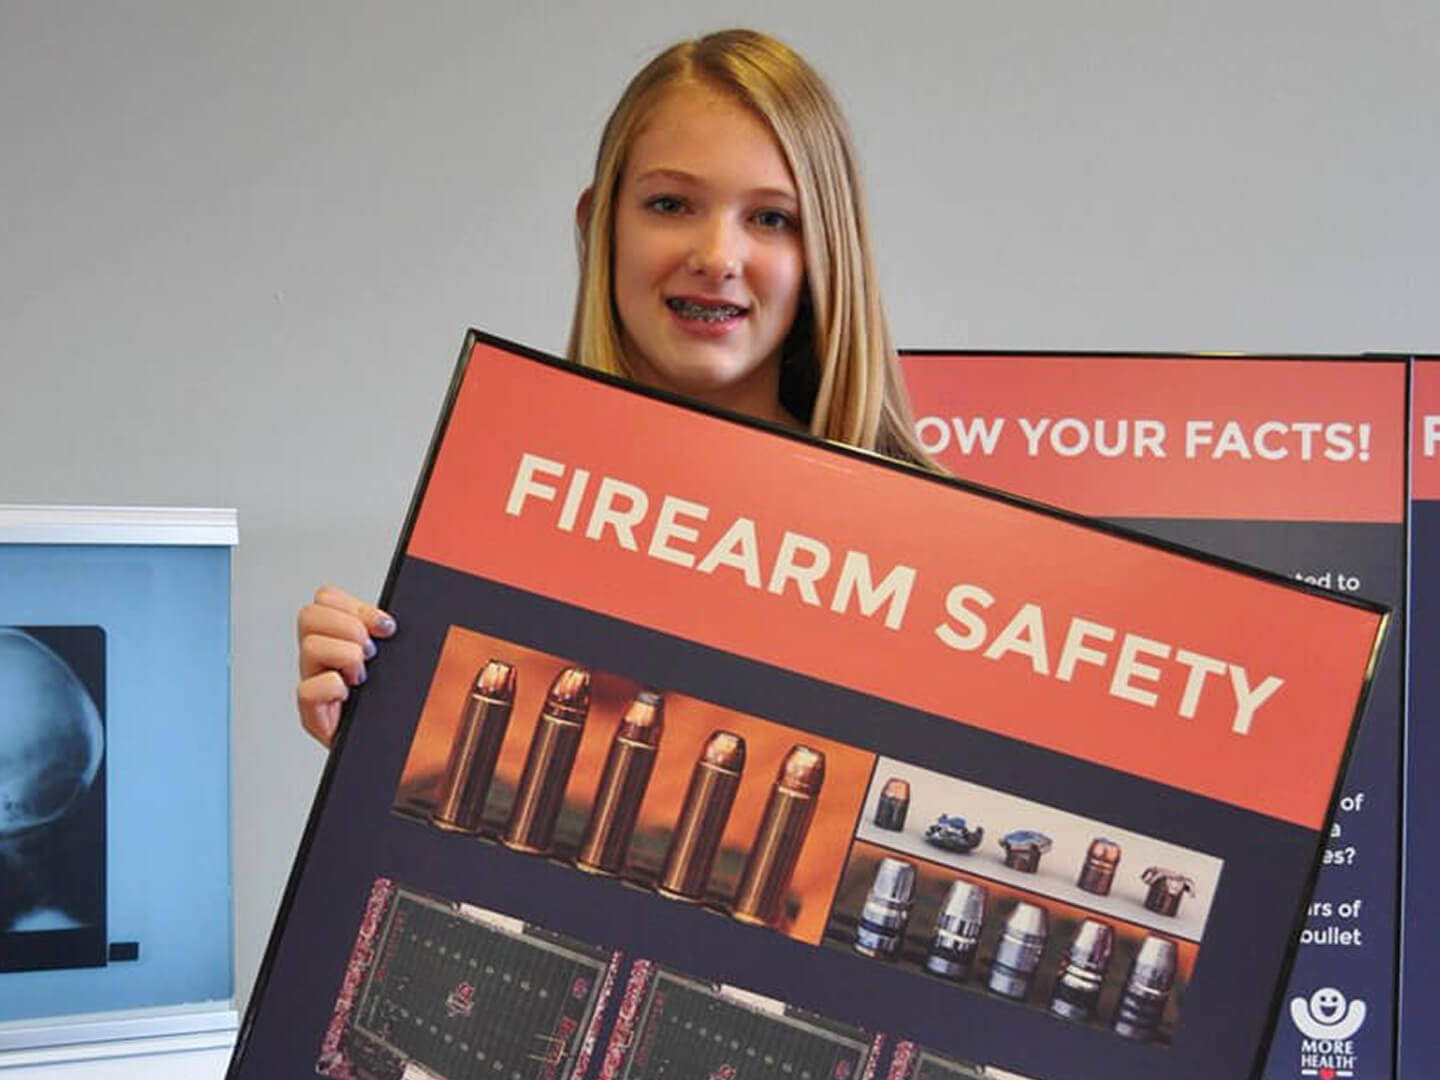 teenager holding a More Health Firearm Safety Poster. In the background is an x-ray of a skull.